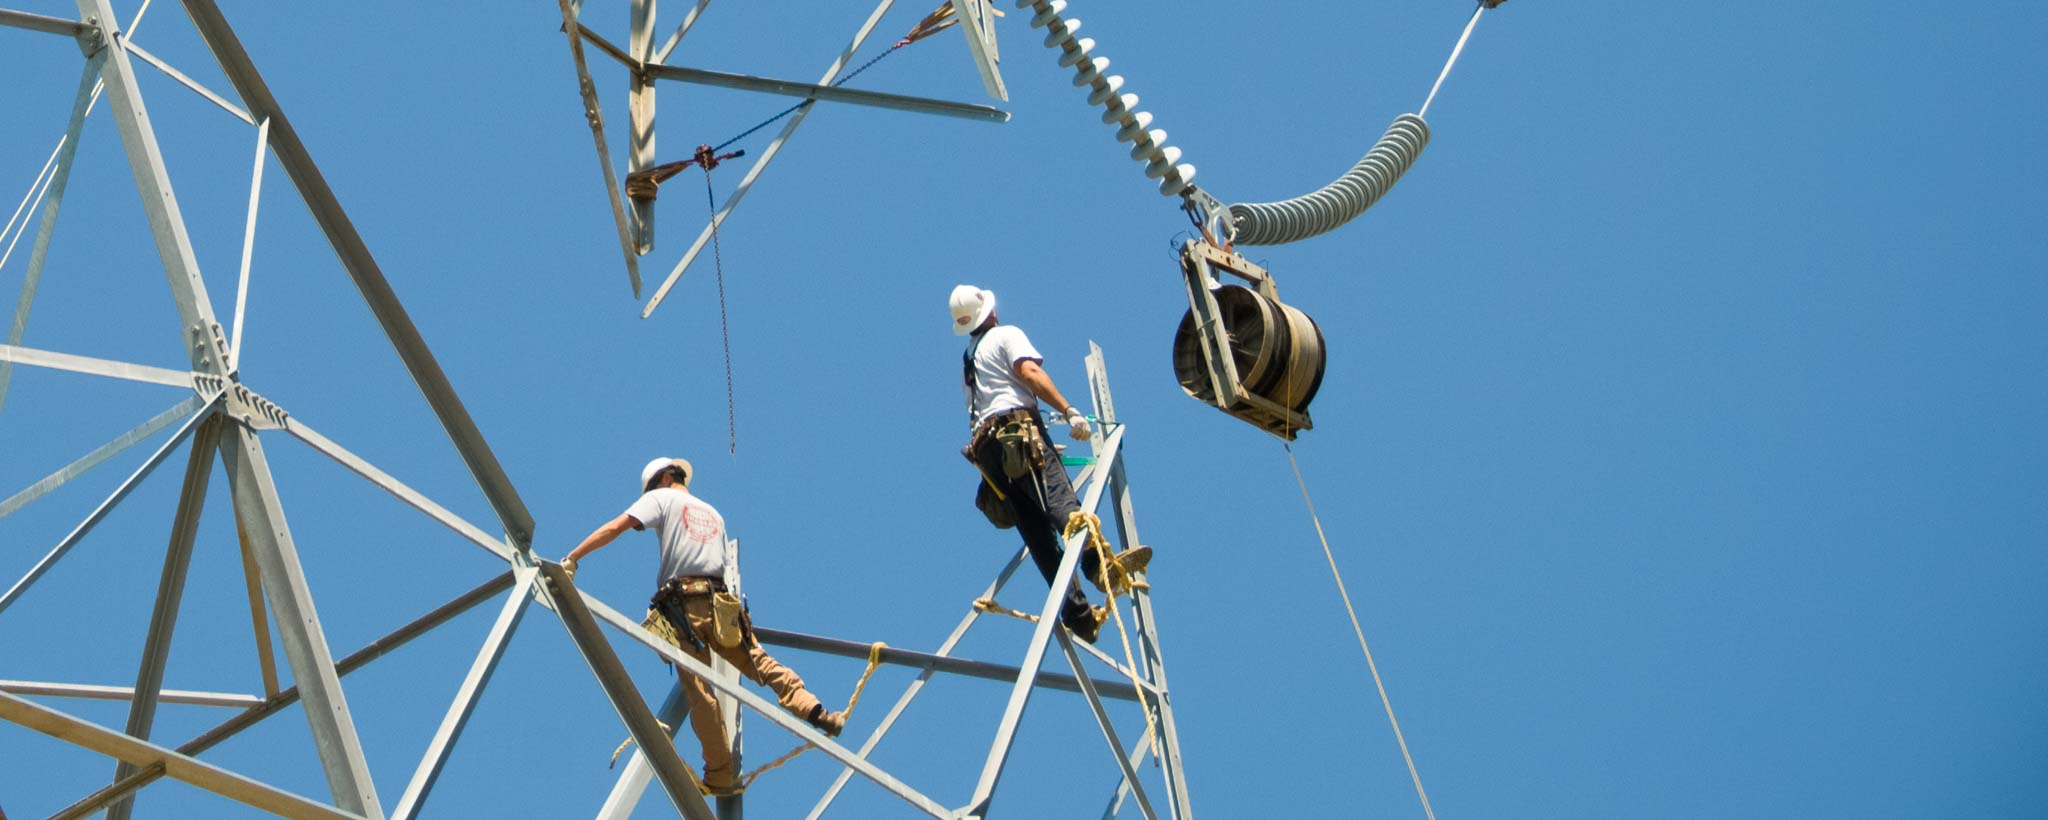 Transmission Tower Construction